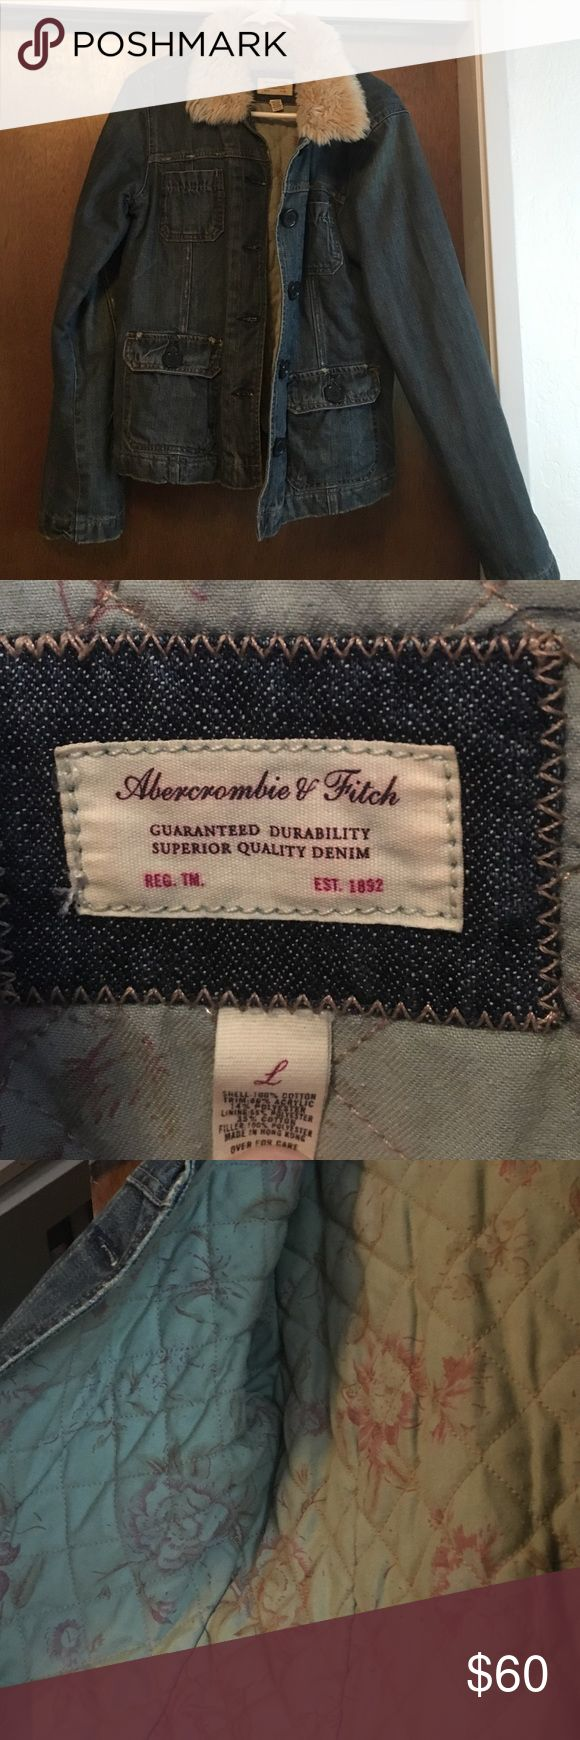 Abercrombie and fitch jacket Nicely lined heavy warm Abercrombie and fitch jacket make an offer ;) Abercrombie & Fitch Jackets & Coats Jean Jackets